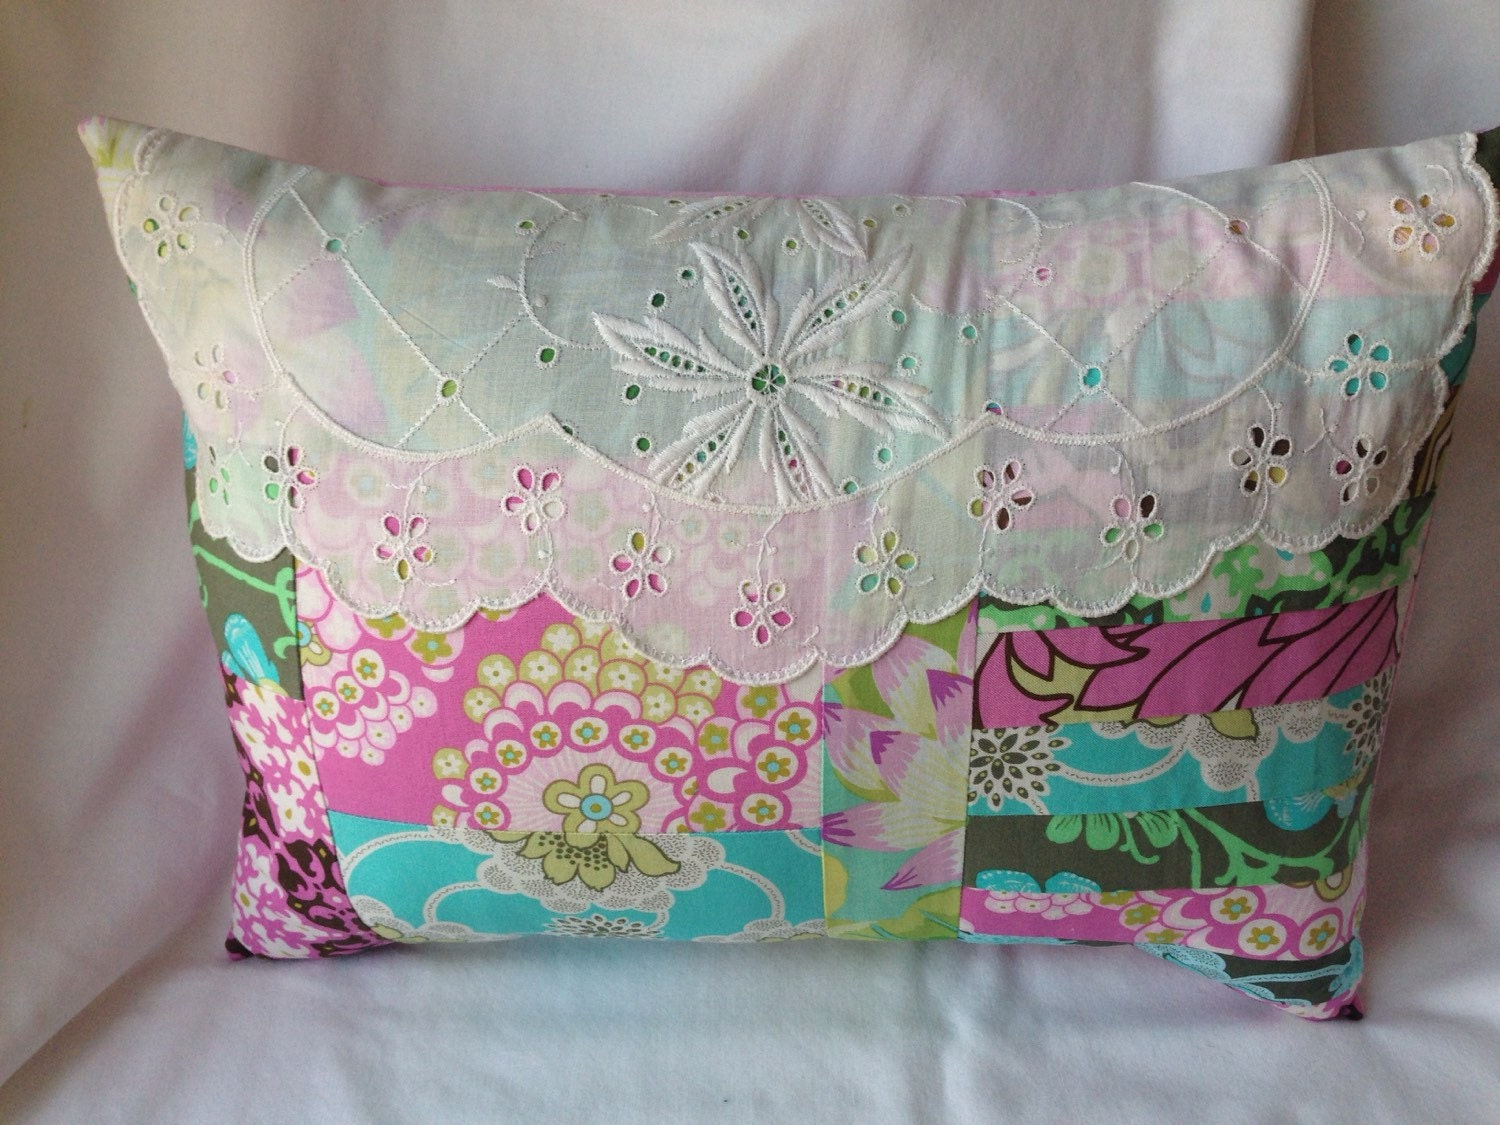 Decorative Pillow Trim : Shabby Chic Pillow Lace trim Decorative pillow in Amy Butler